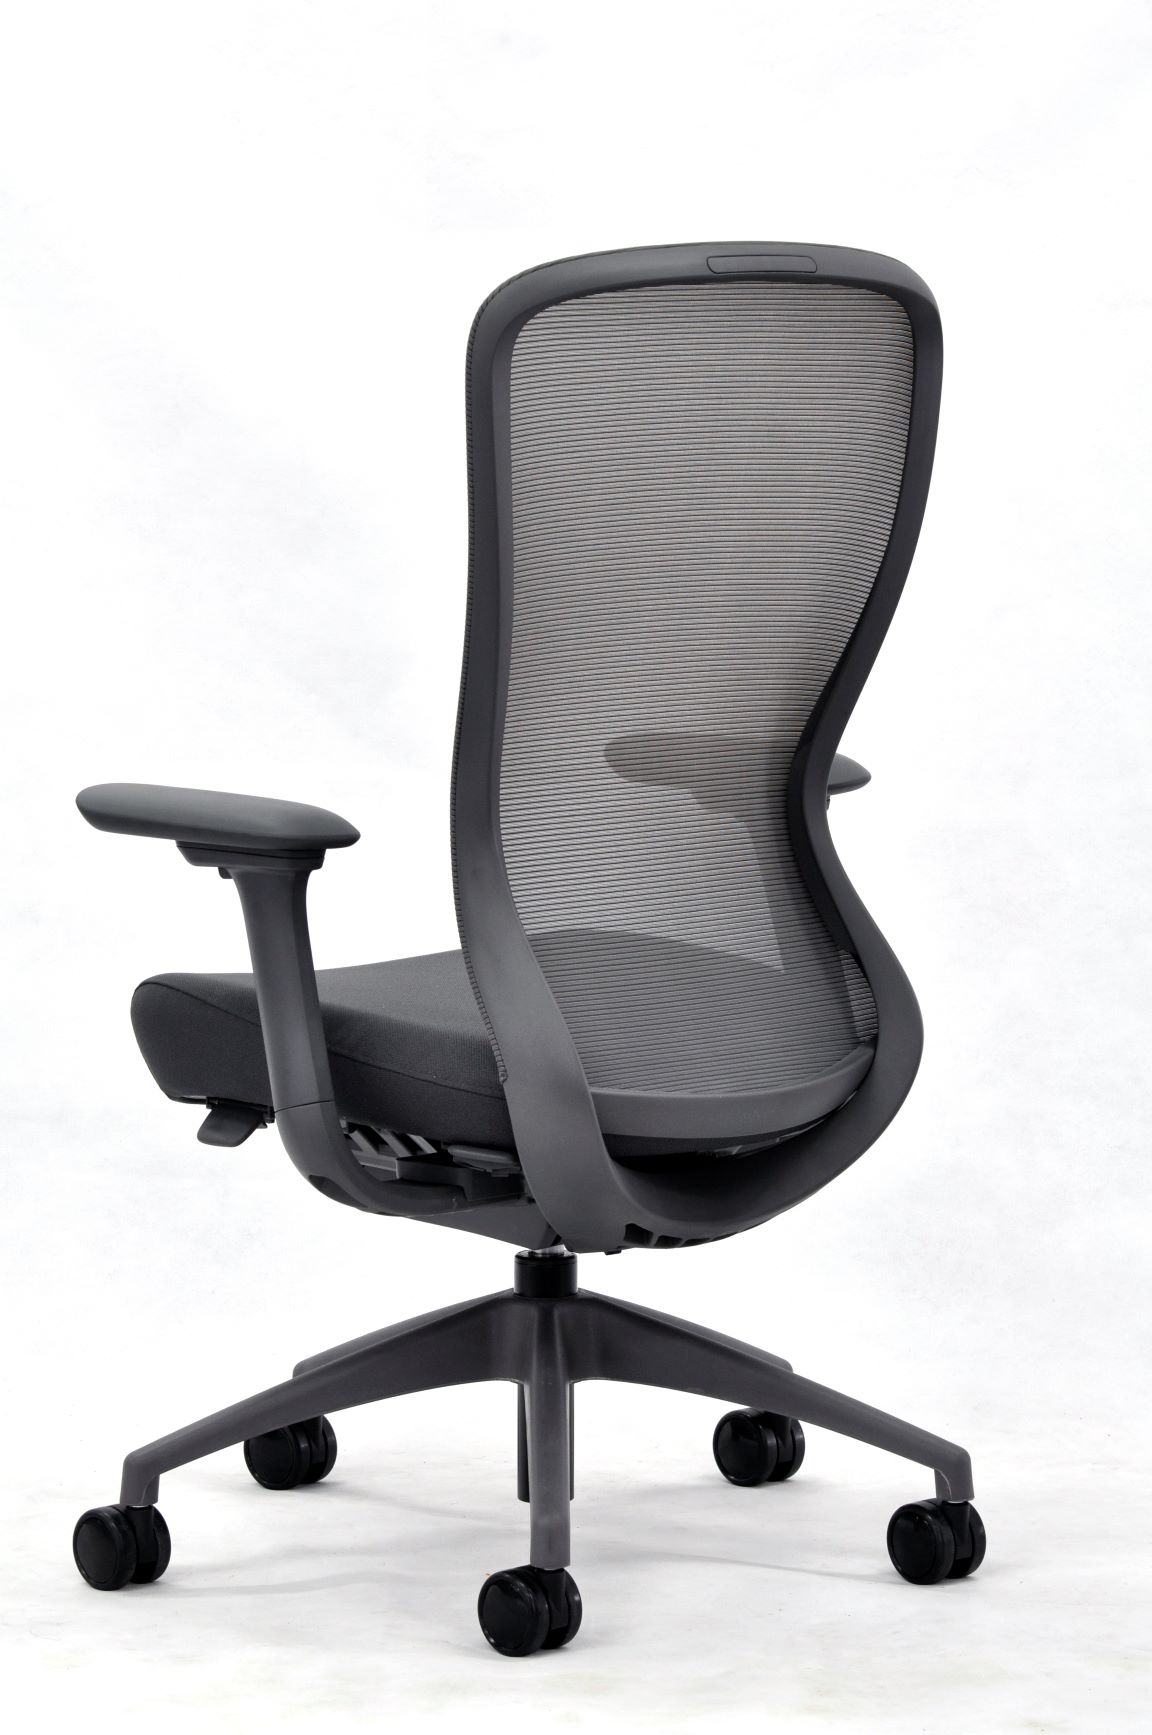 eurotech seating black exchange office chair back view